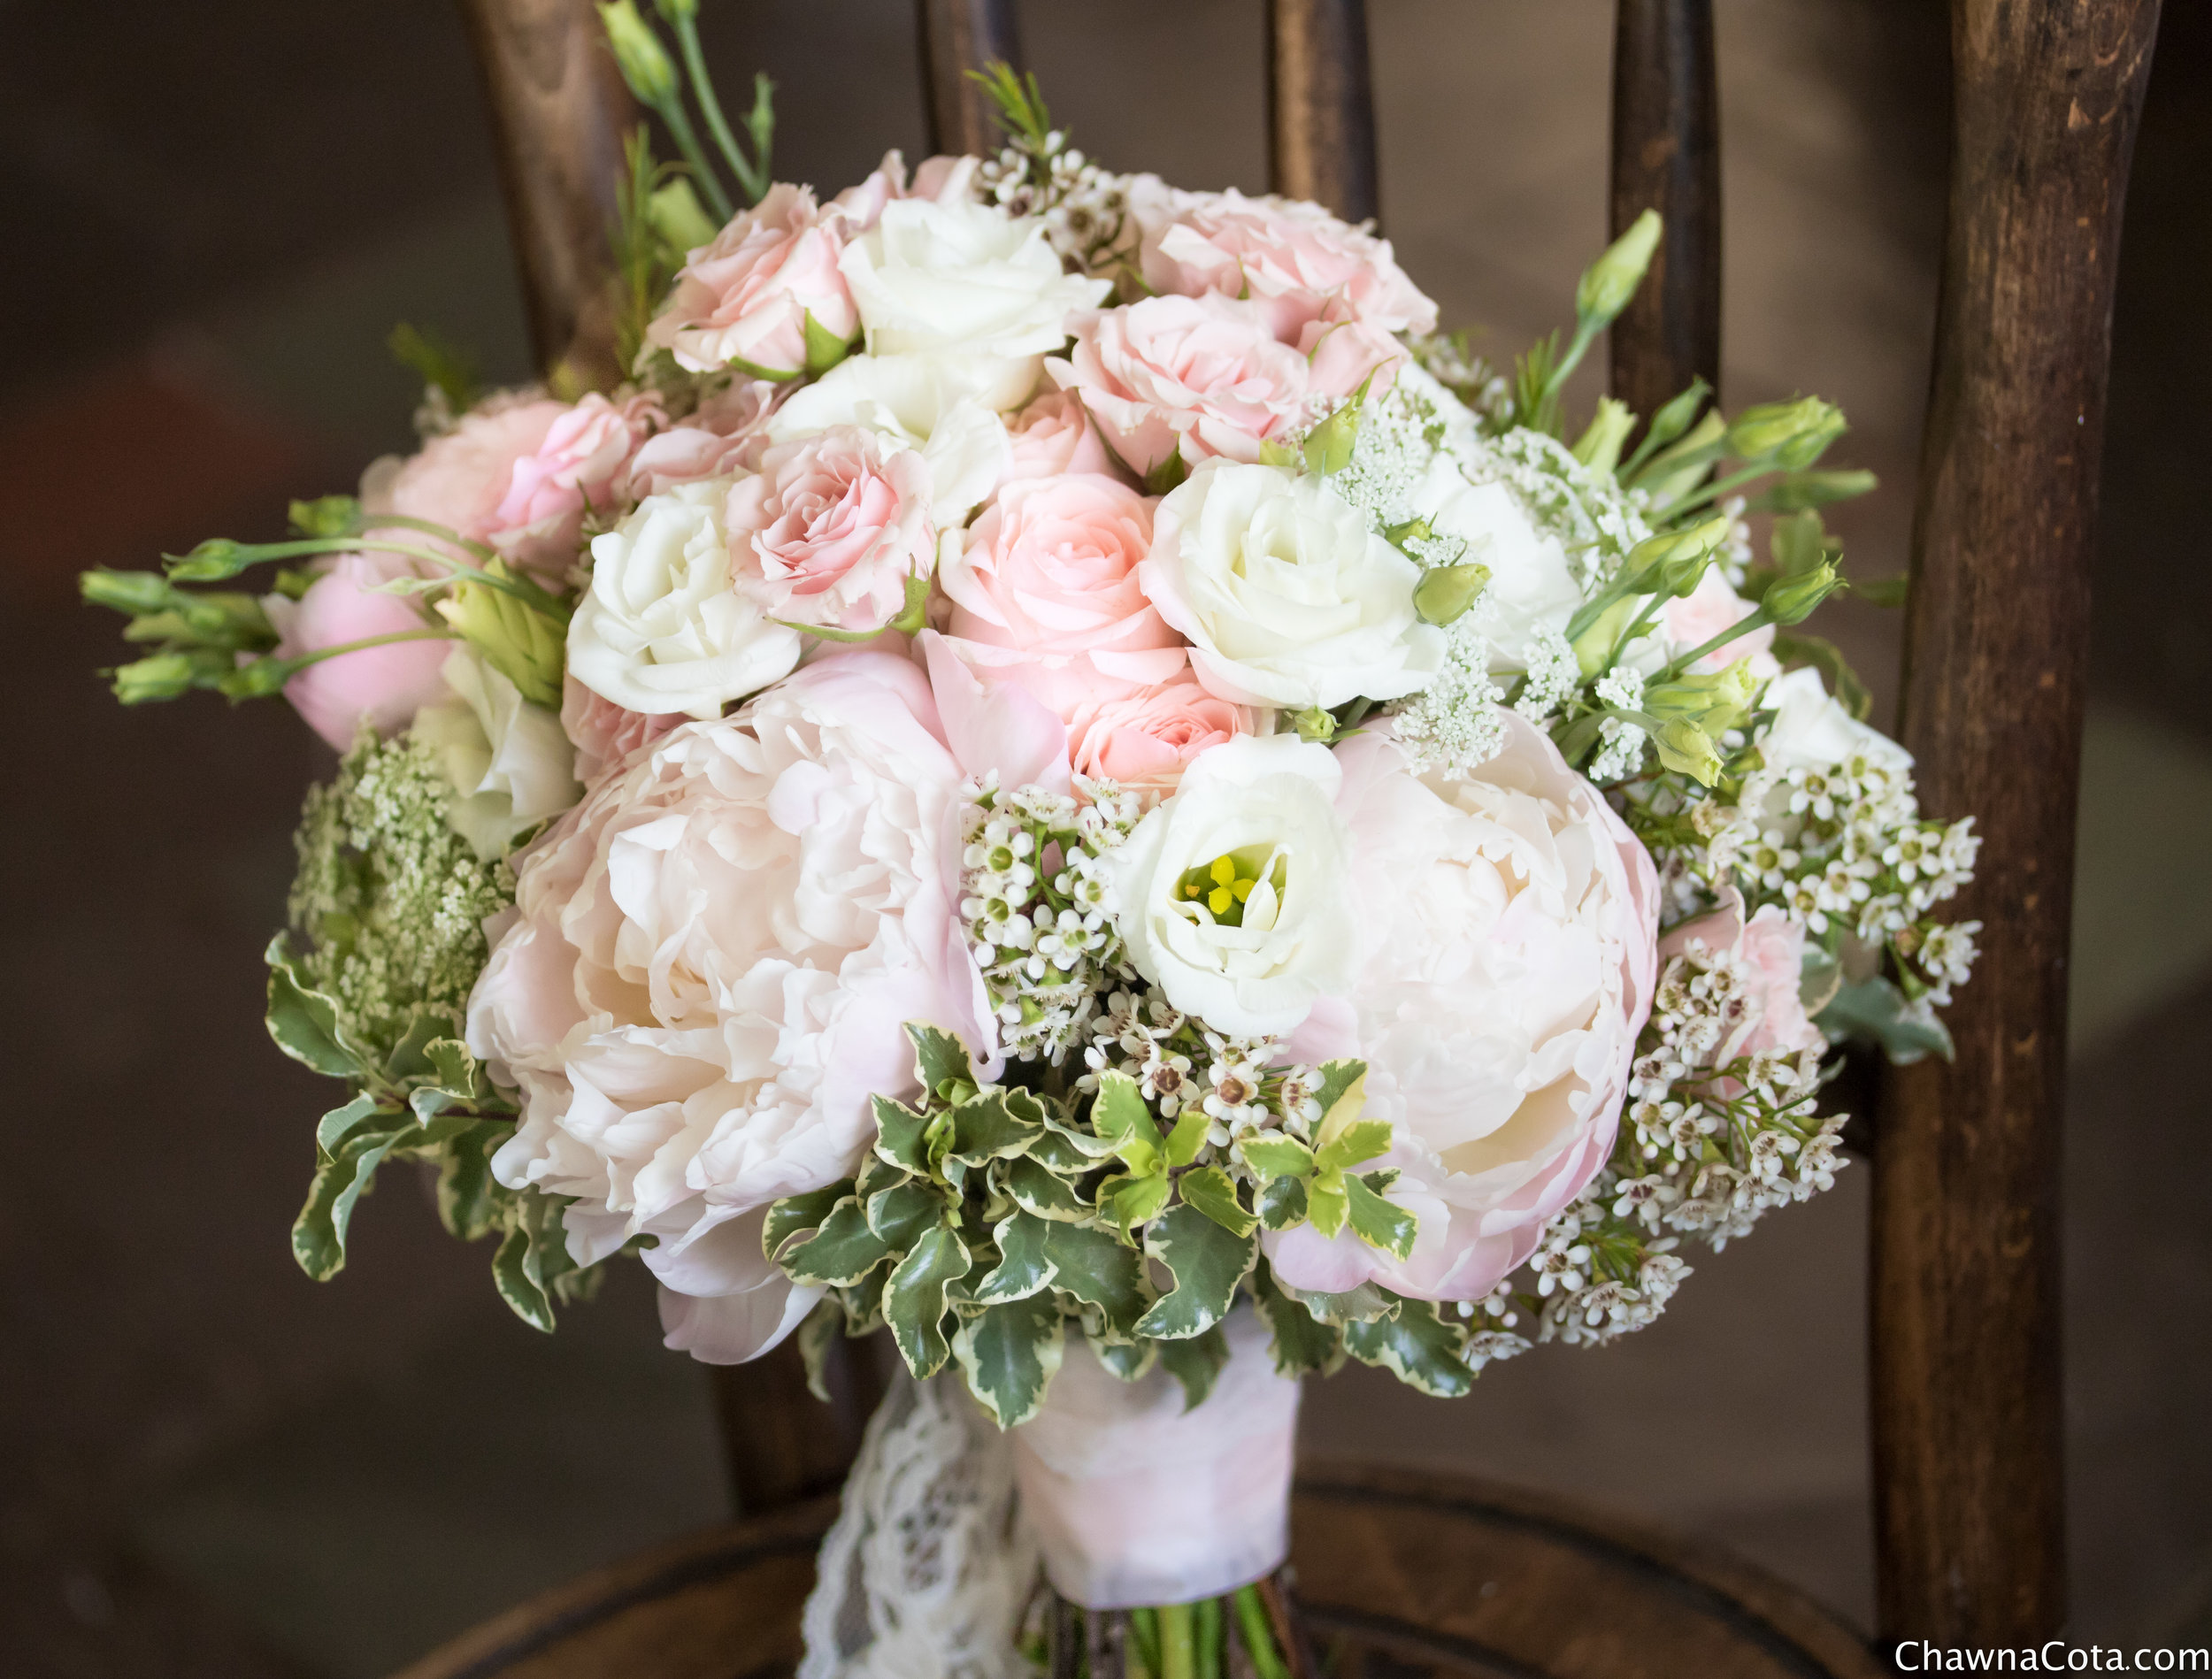 Maria Thatcher Flowers Peony Bridal Bouquet-1.jpg